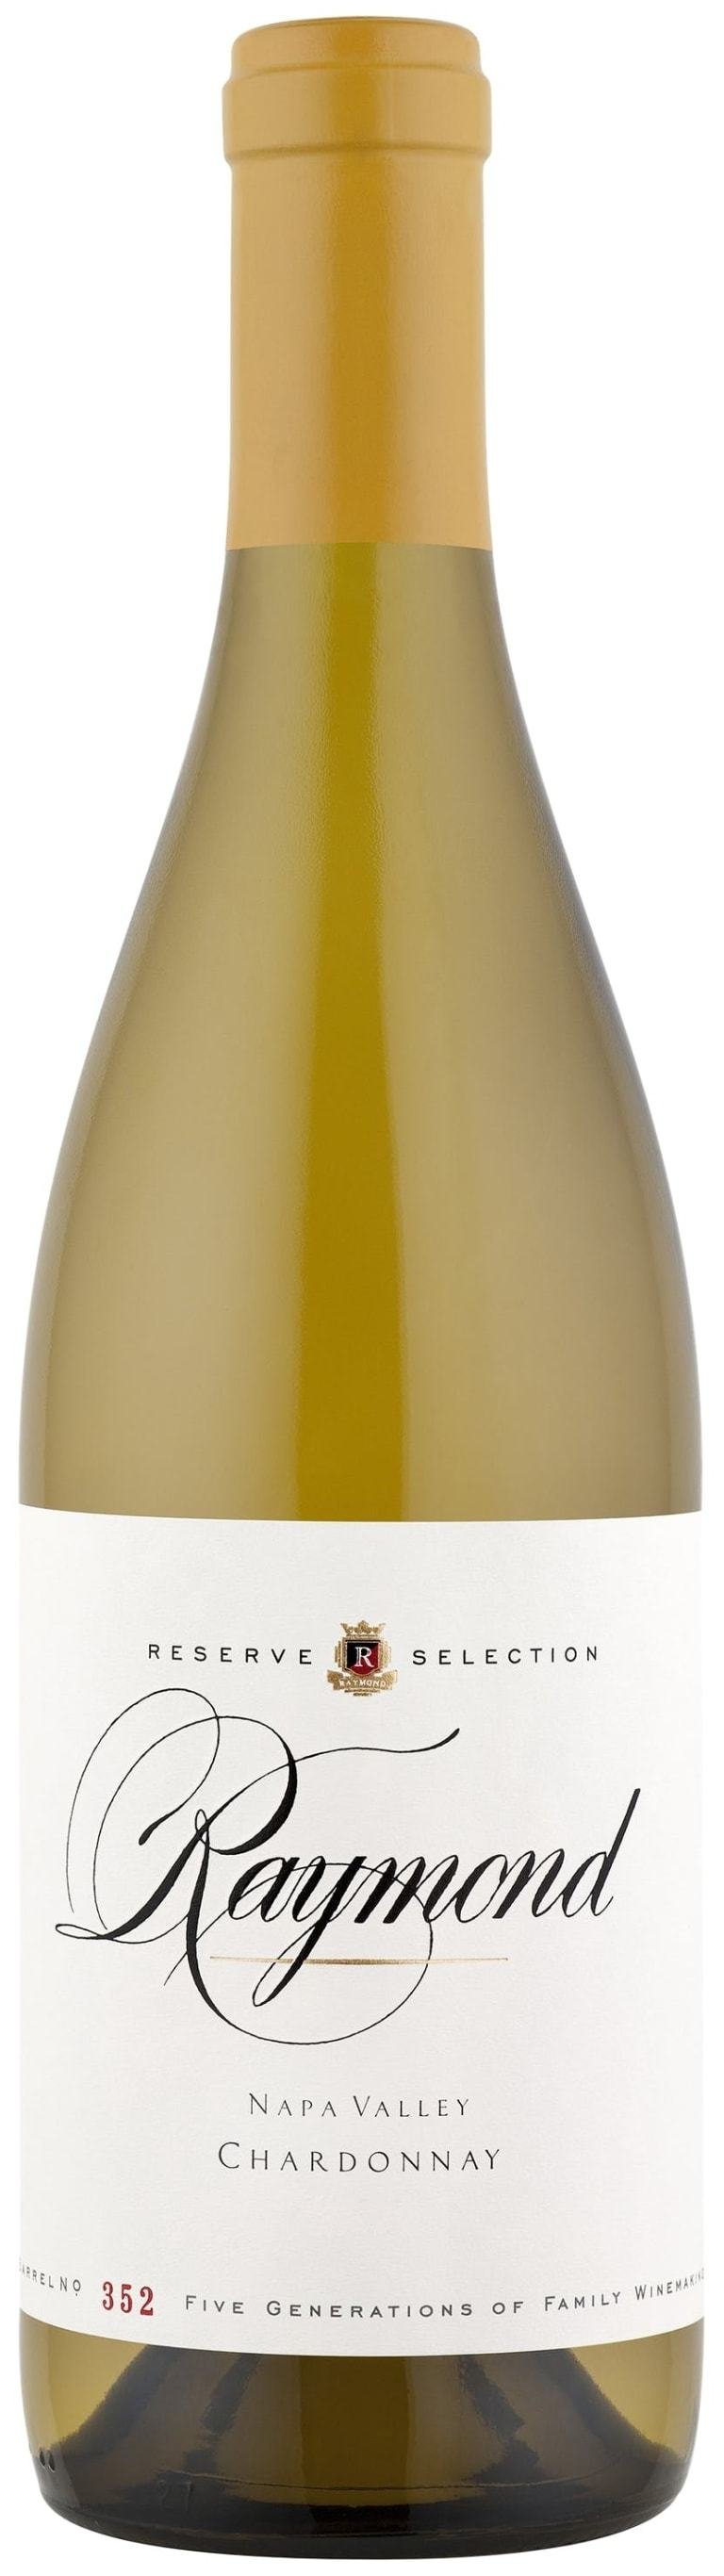 Raymond Vineyards Chardonnay Reserve Selection 2017